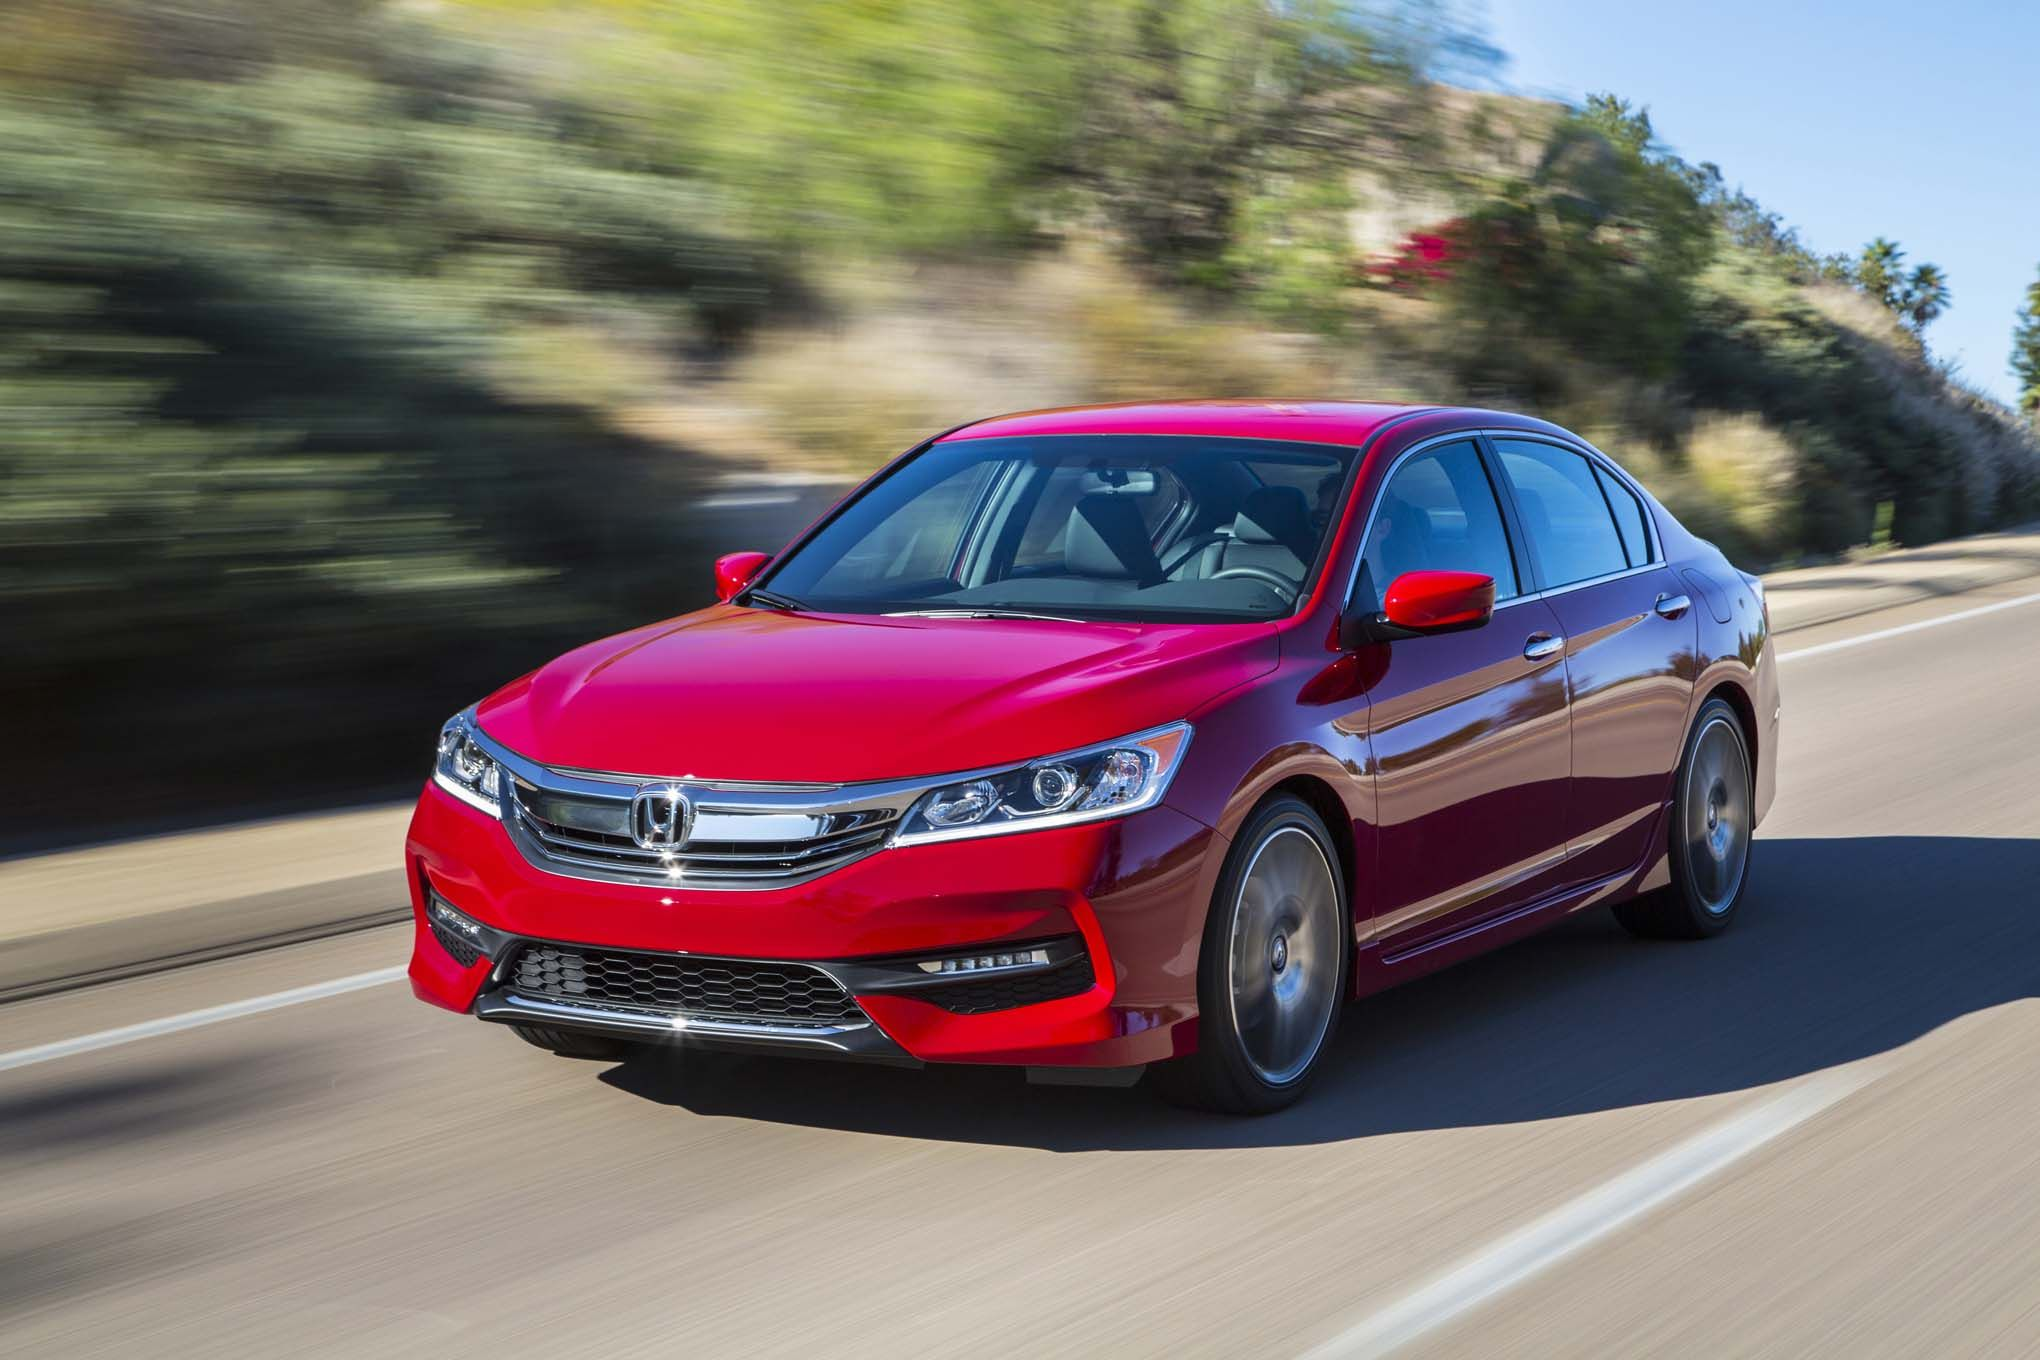 2016 honda accord lx vs accord sport how are they different honda accord pinterest accord sport honda accord lx and honda accord